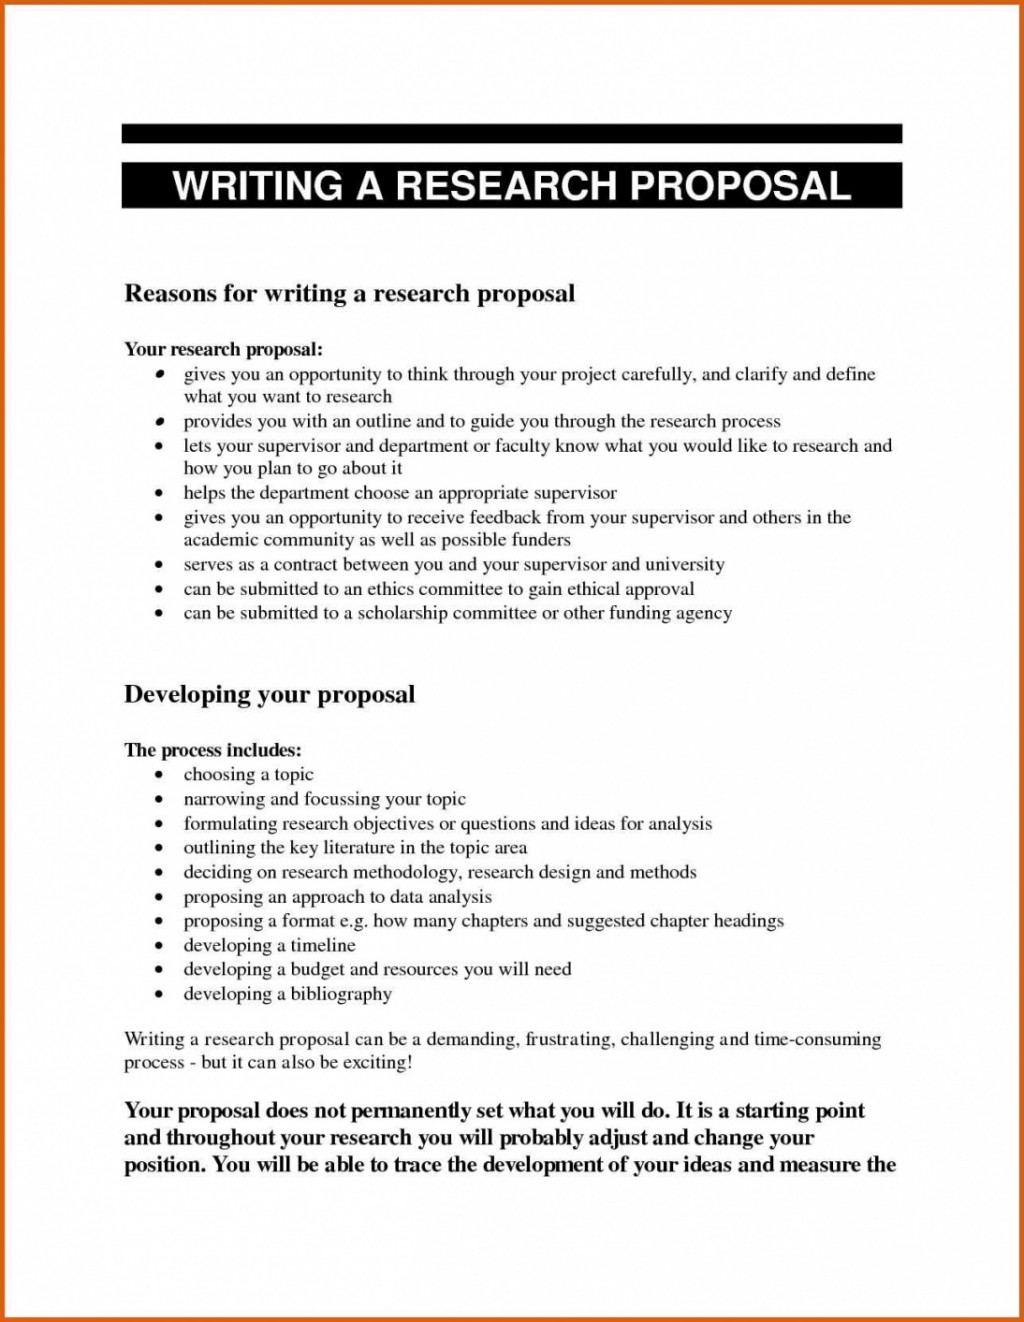 011 Gender Equality Essay Example Research Proposal Paper Topic Top Outline 300 Words Large